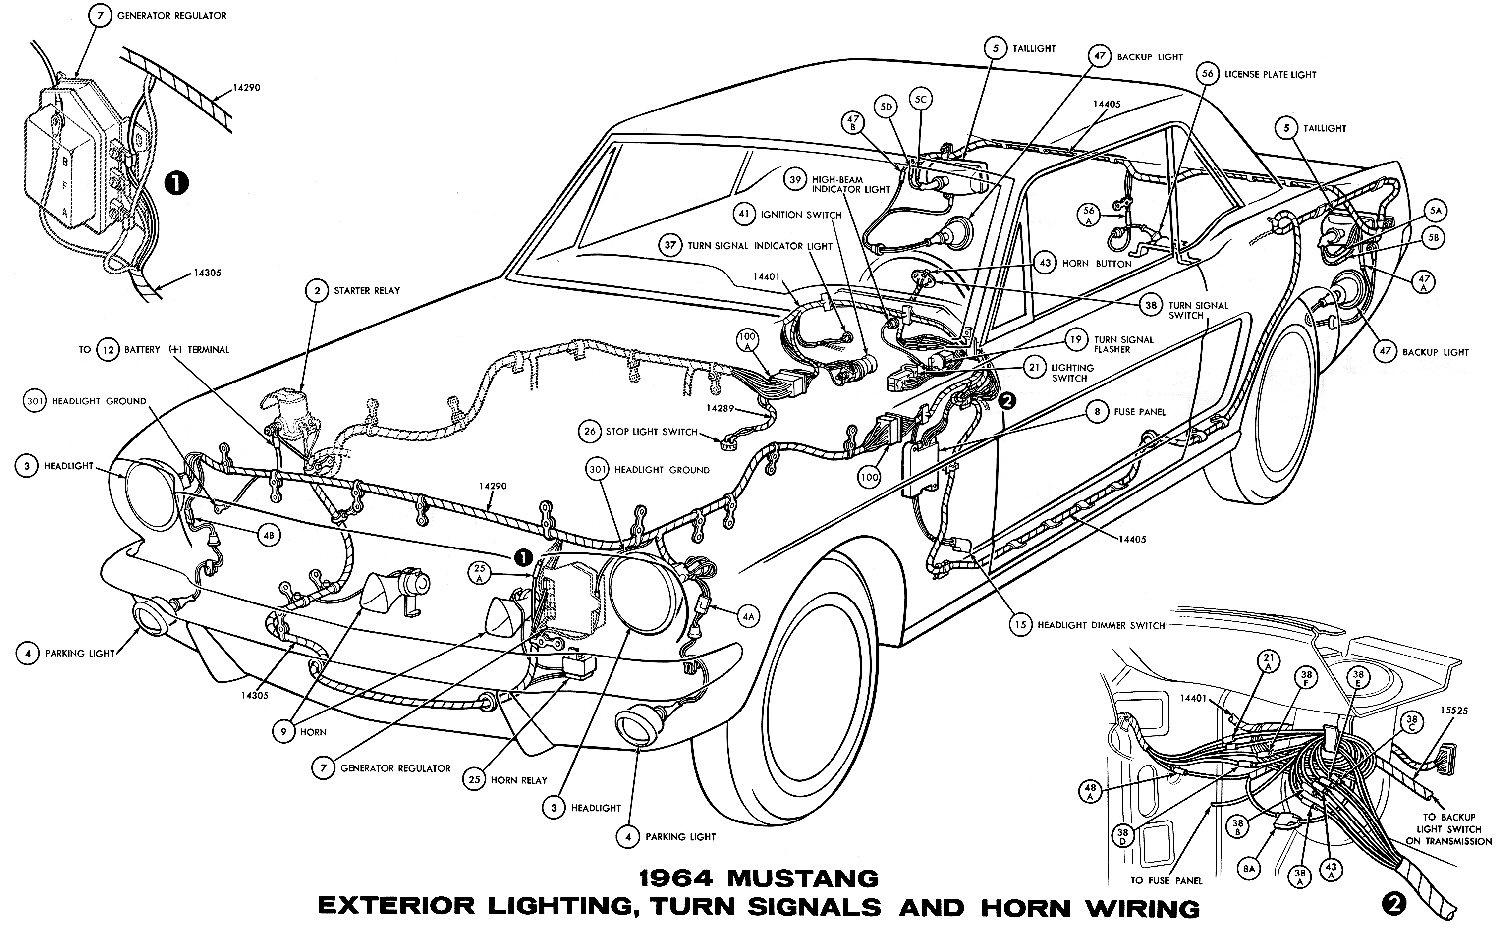 1964 Mustang Wiring Diagrams Average Joe Restoration Diagram Exterior Lighting Turn Signals And Horns Pictorial Or Schematic